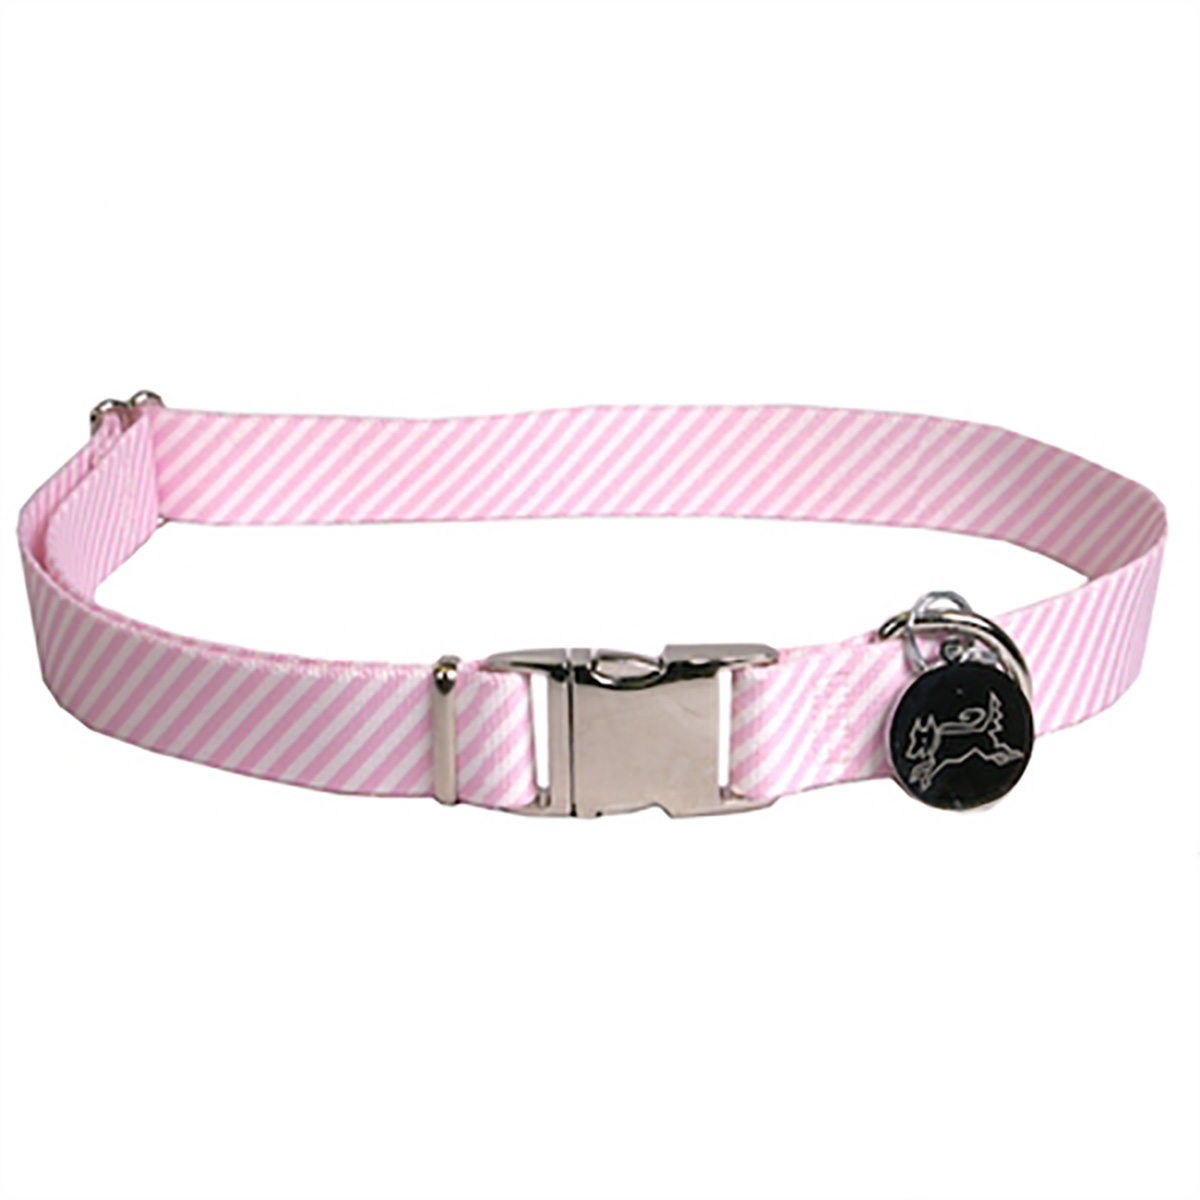 Southern Dawg Seersucker Dog Collar by Yellow Dog - Pink